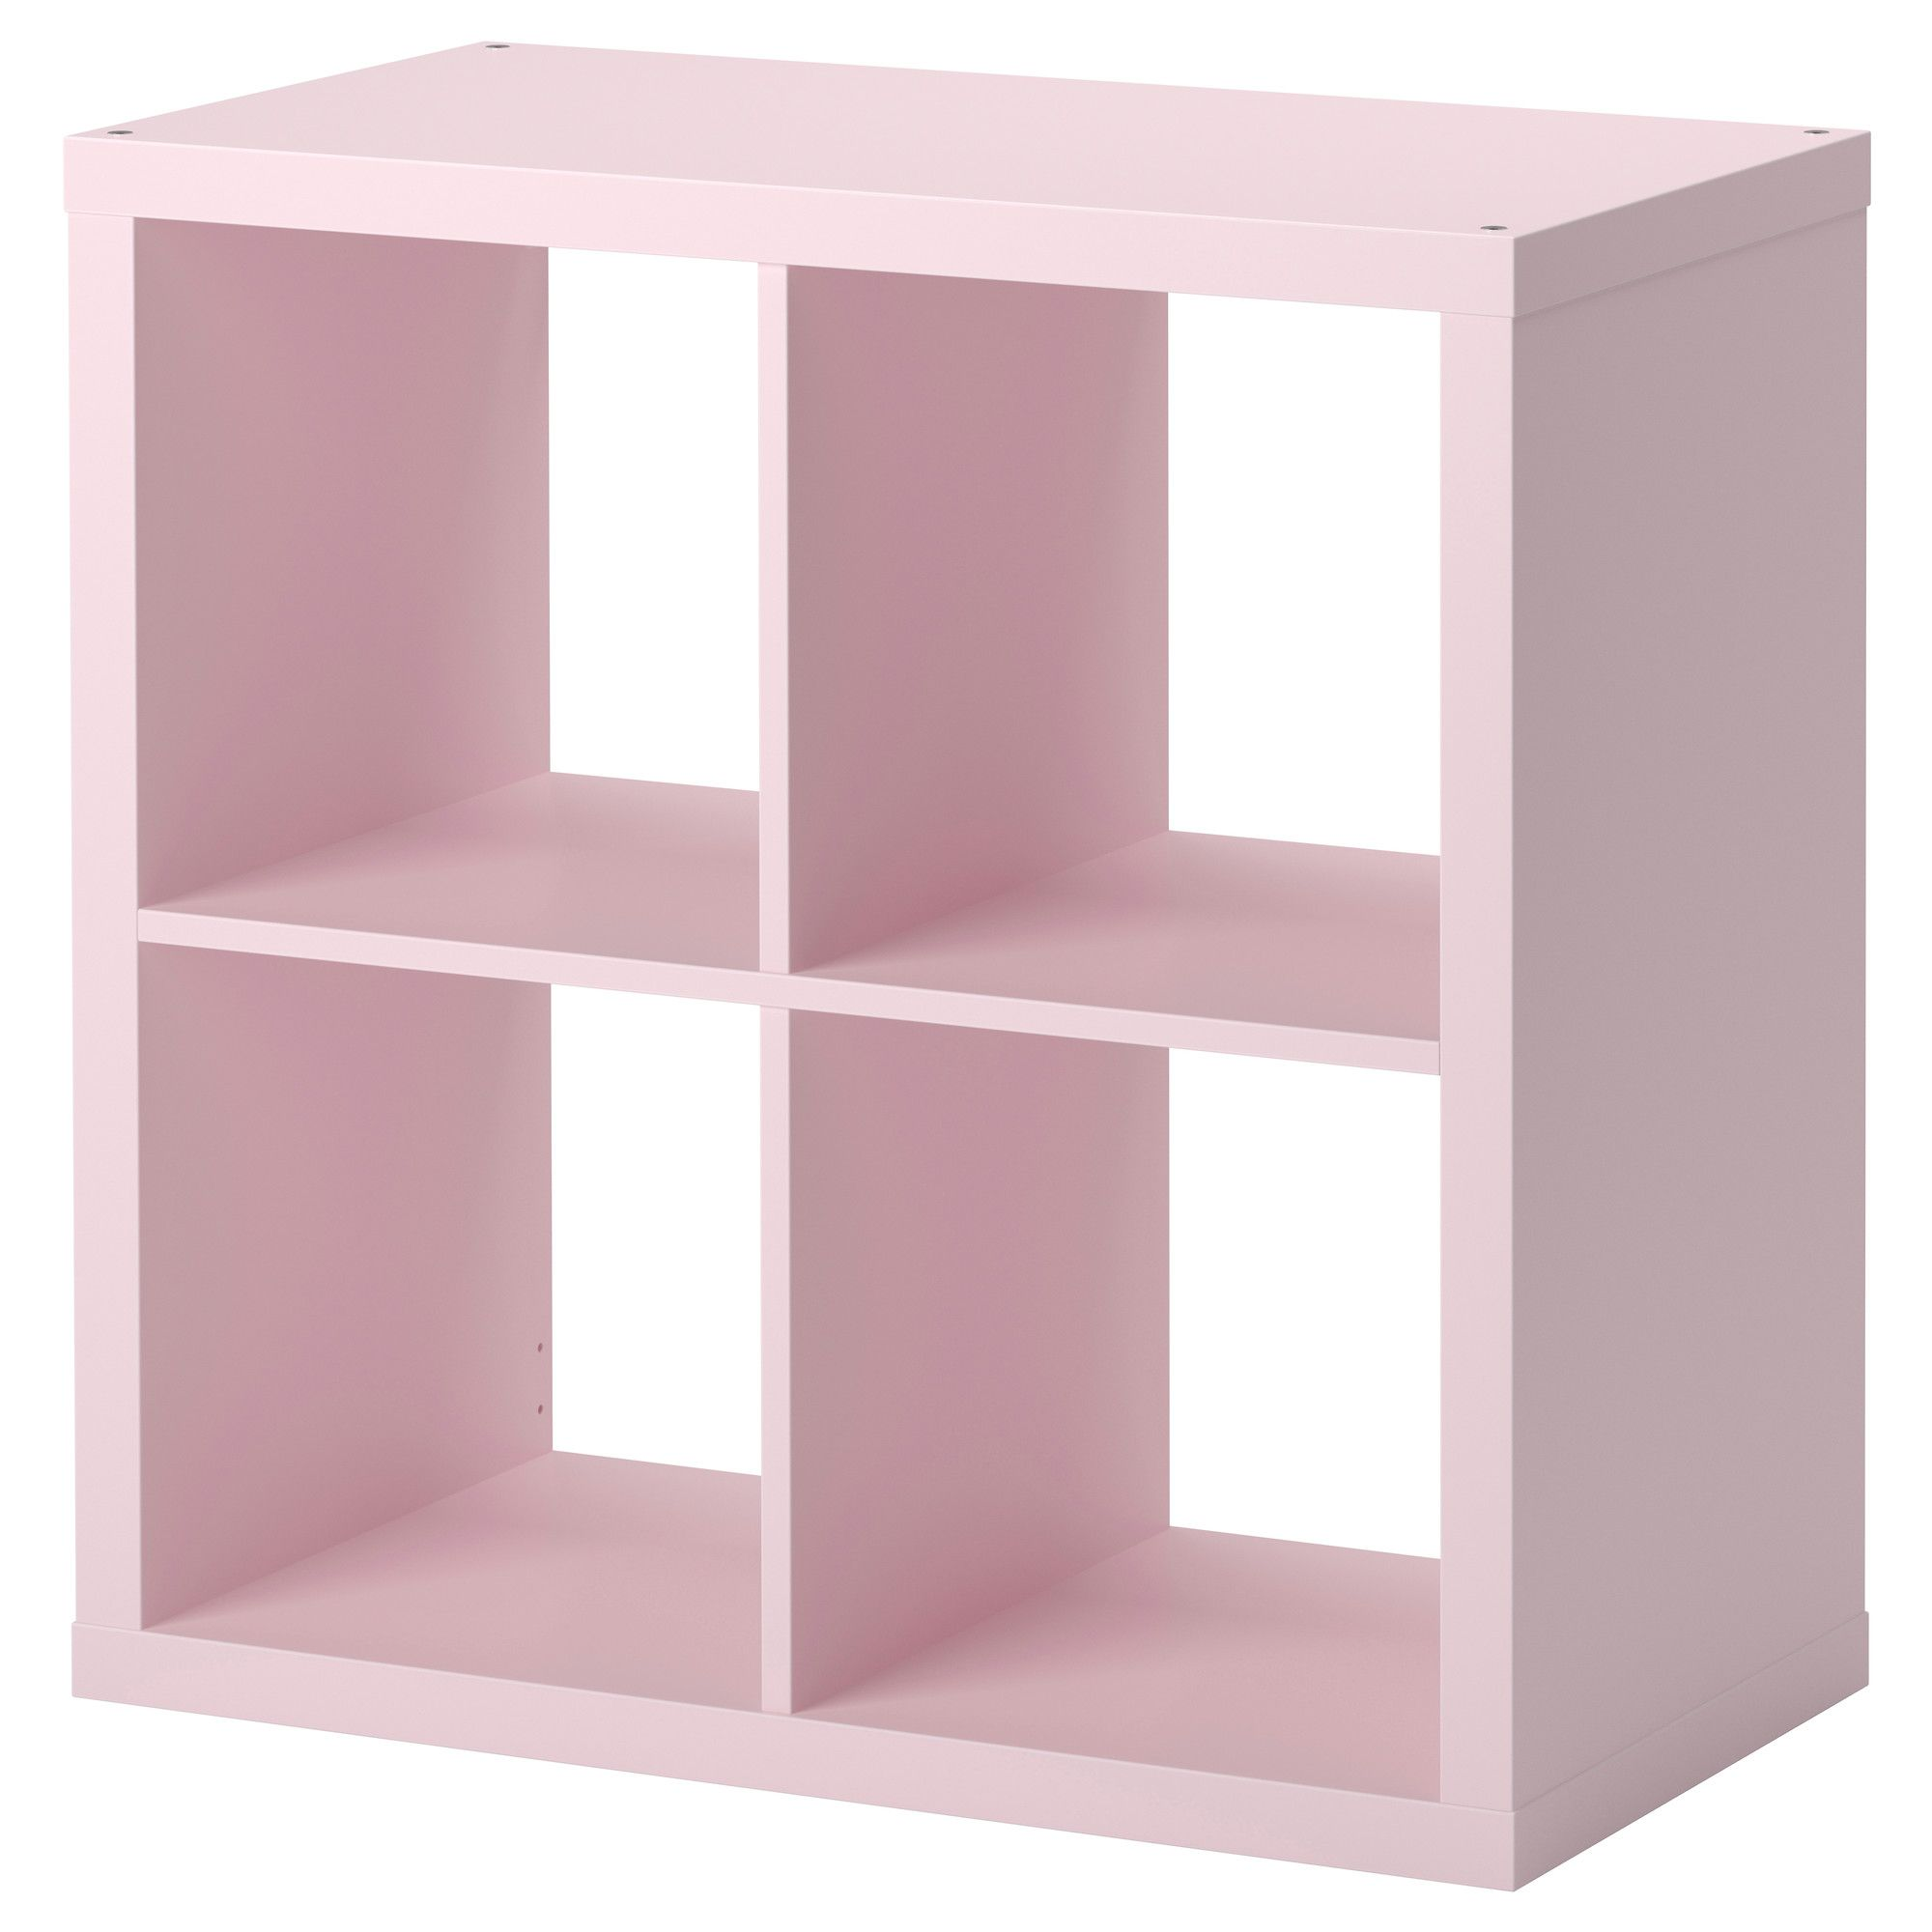 KALLAX Shelving unit - light pink - IKEA -- this will go ...